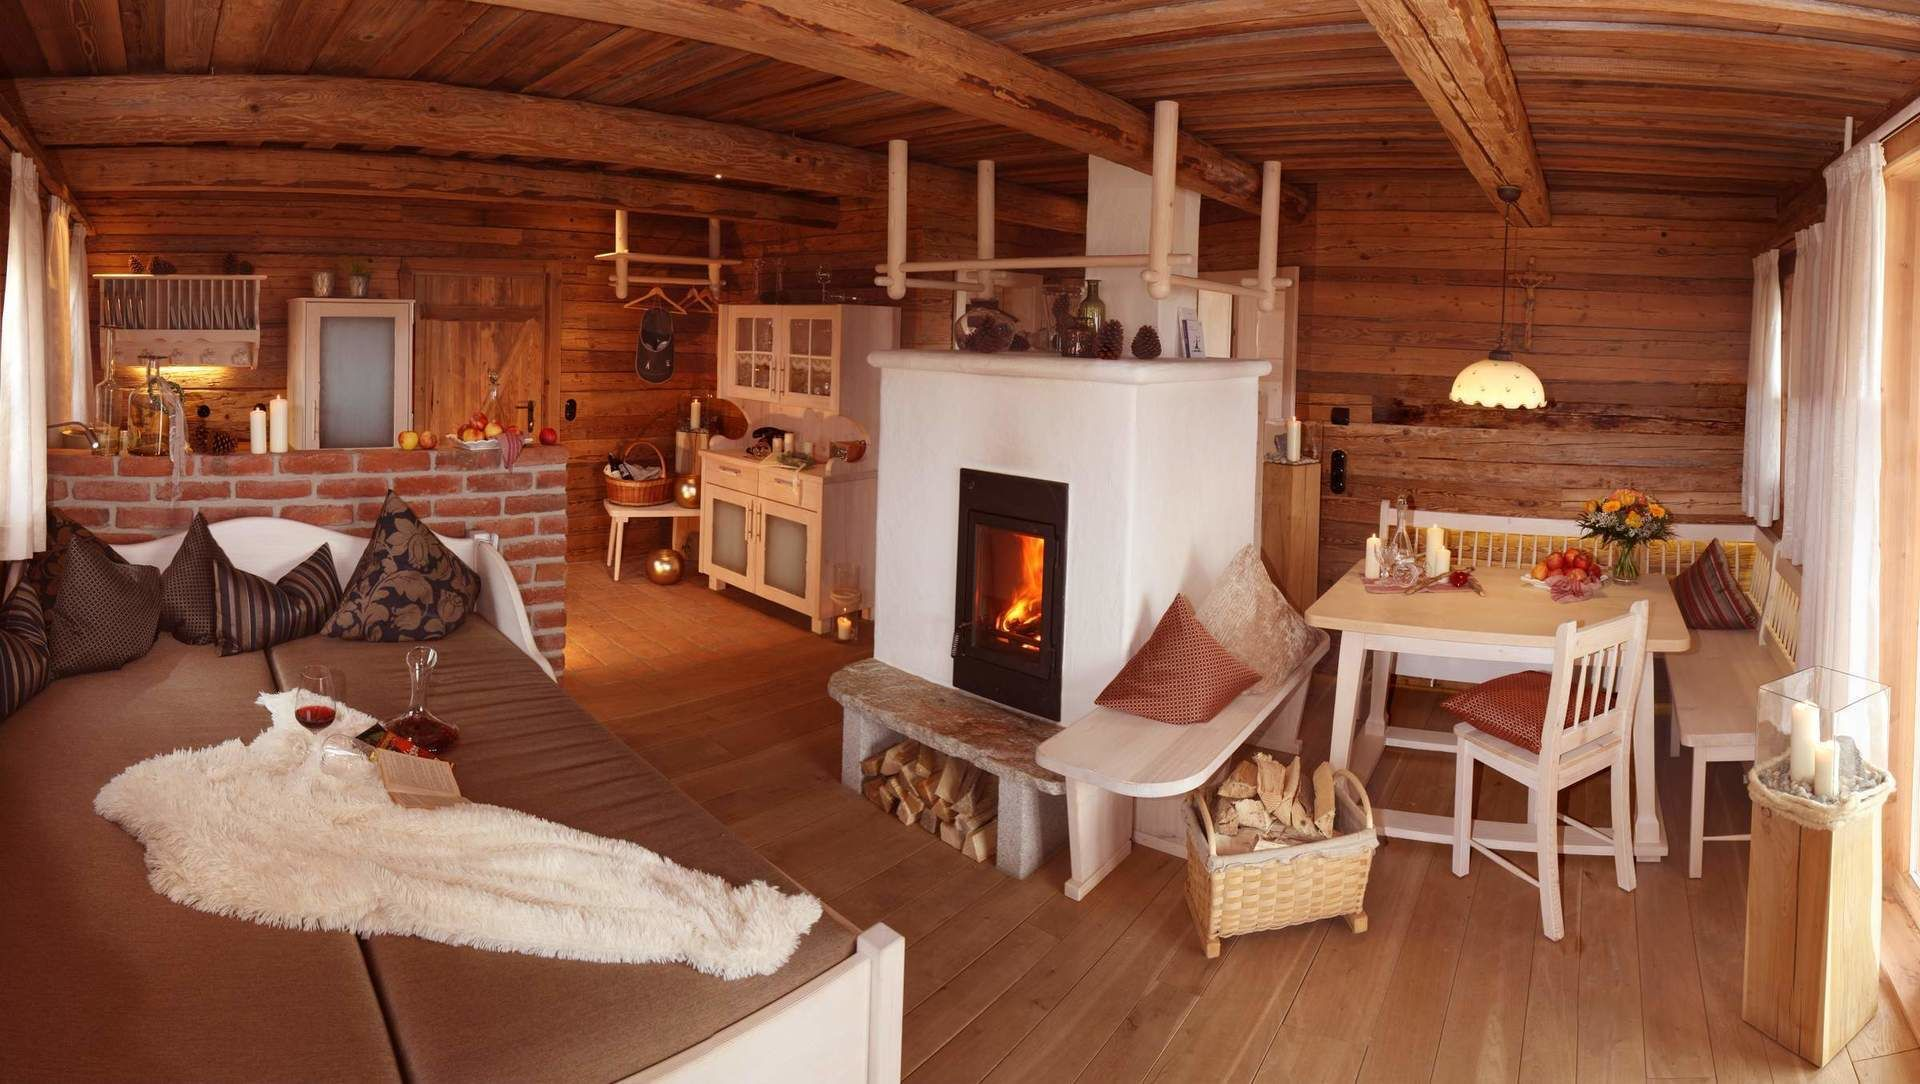 Luxus chalets in bayern exklusive luxus chalets for Luxushotel suche